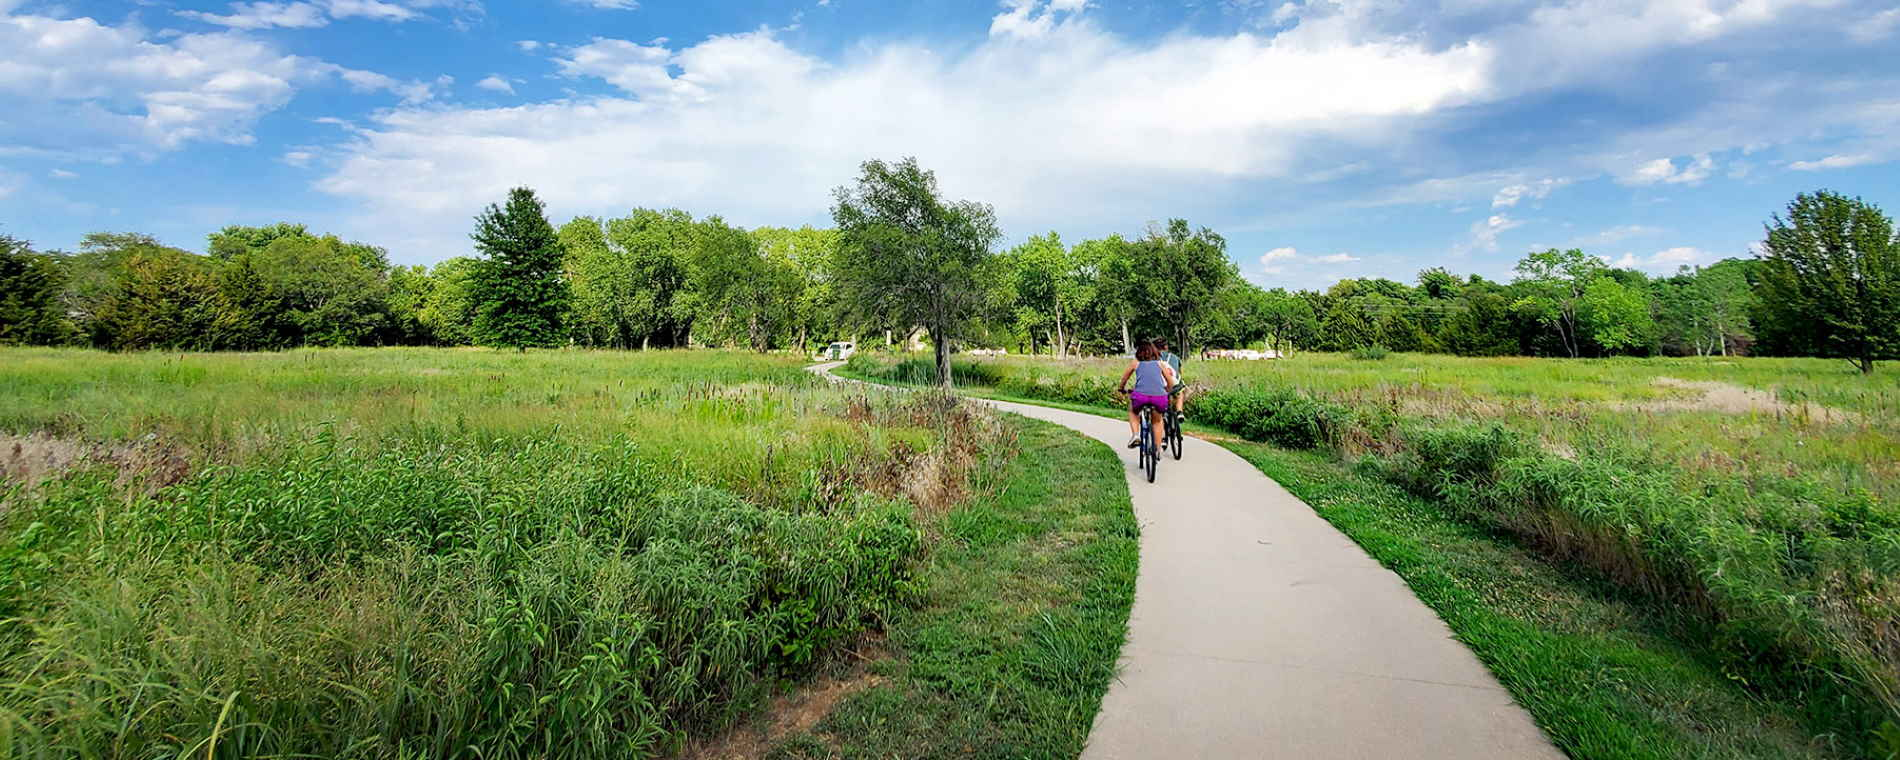 Cyclists on the Path at Swanson Park Wichita